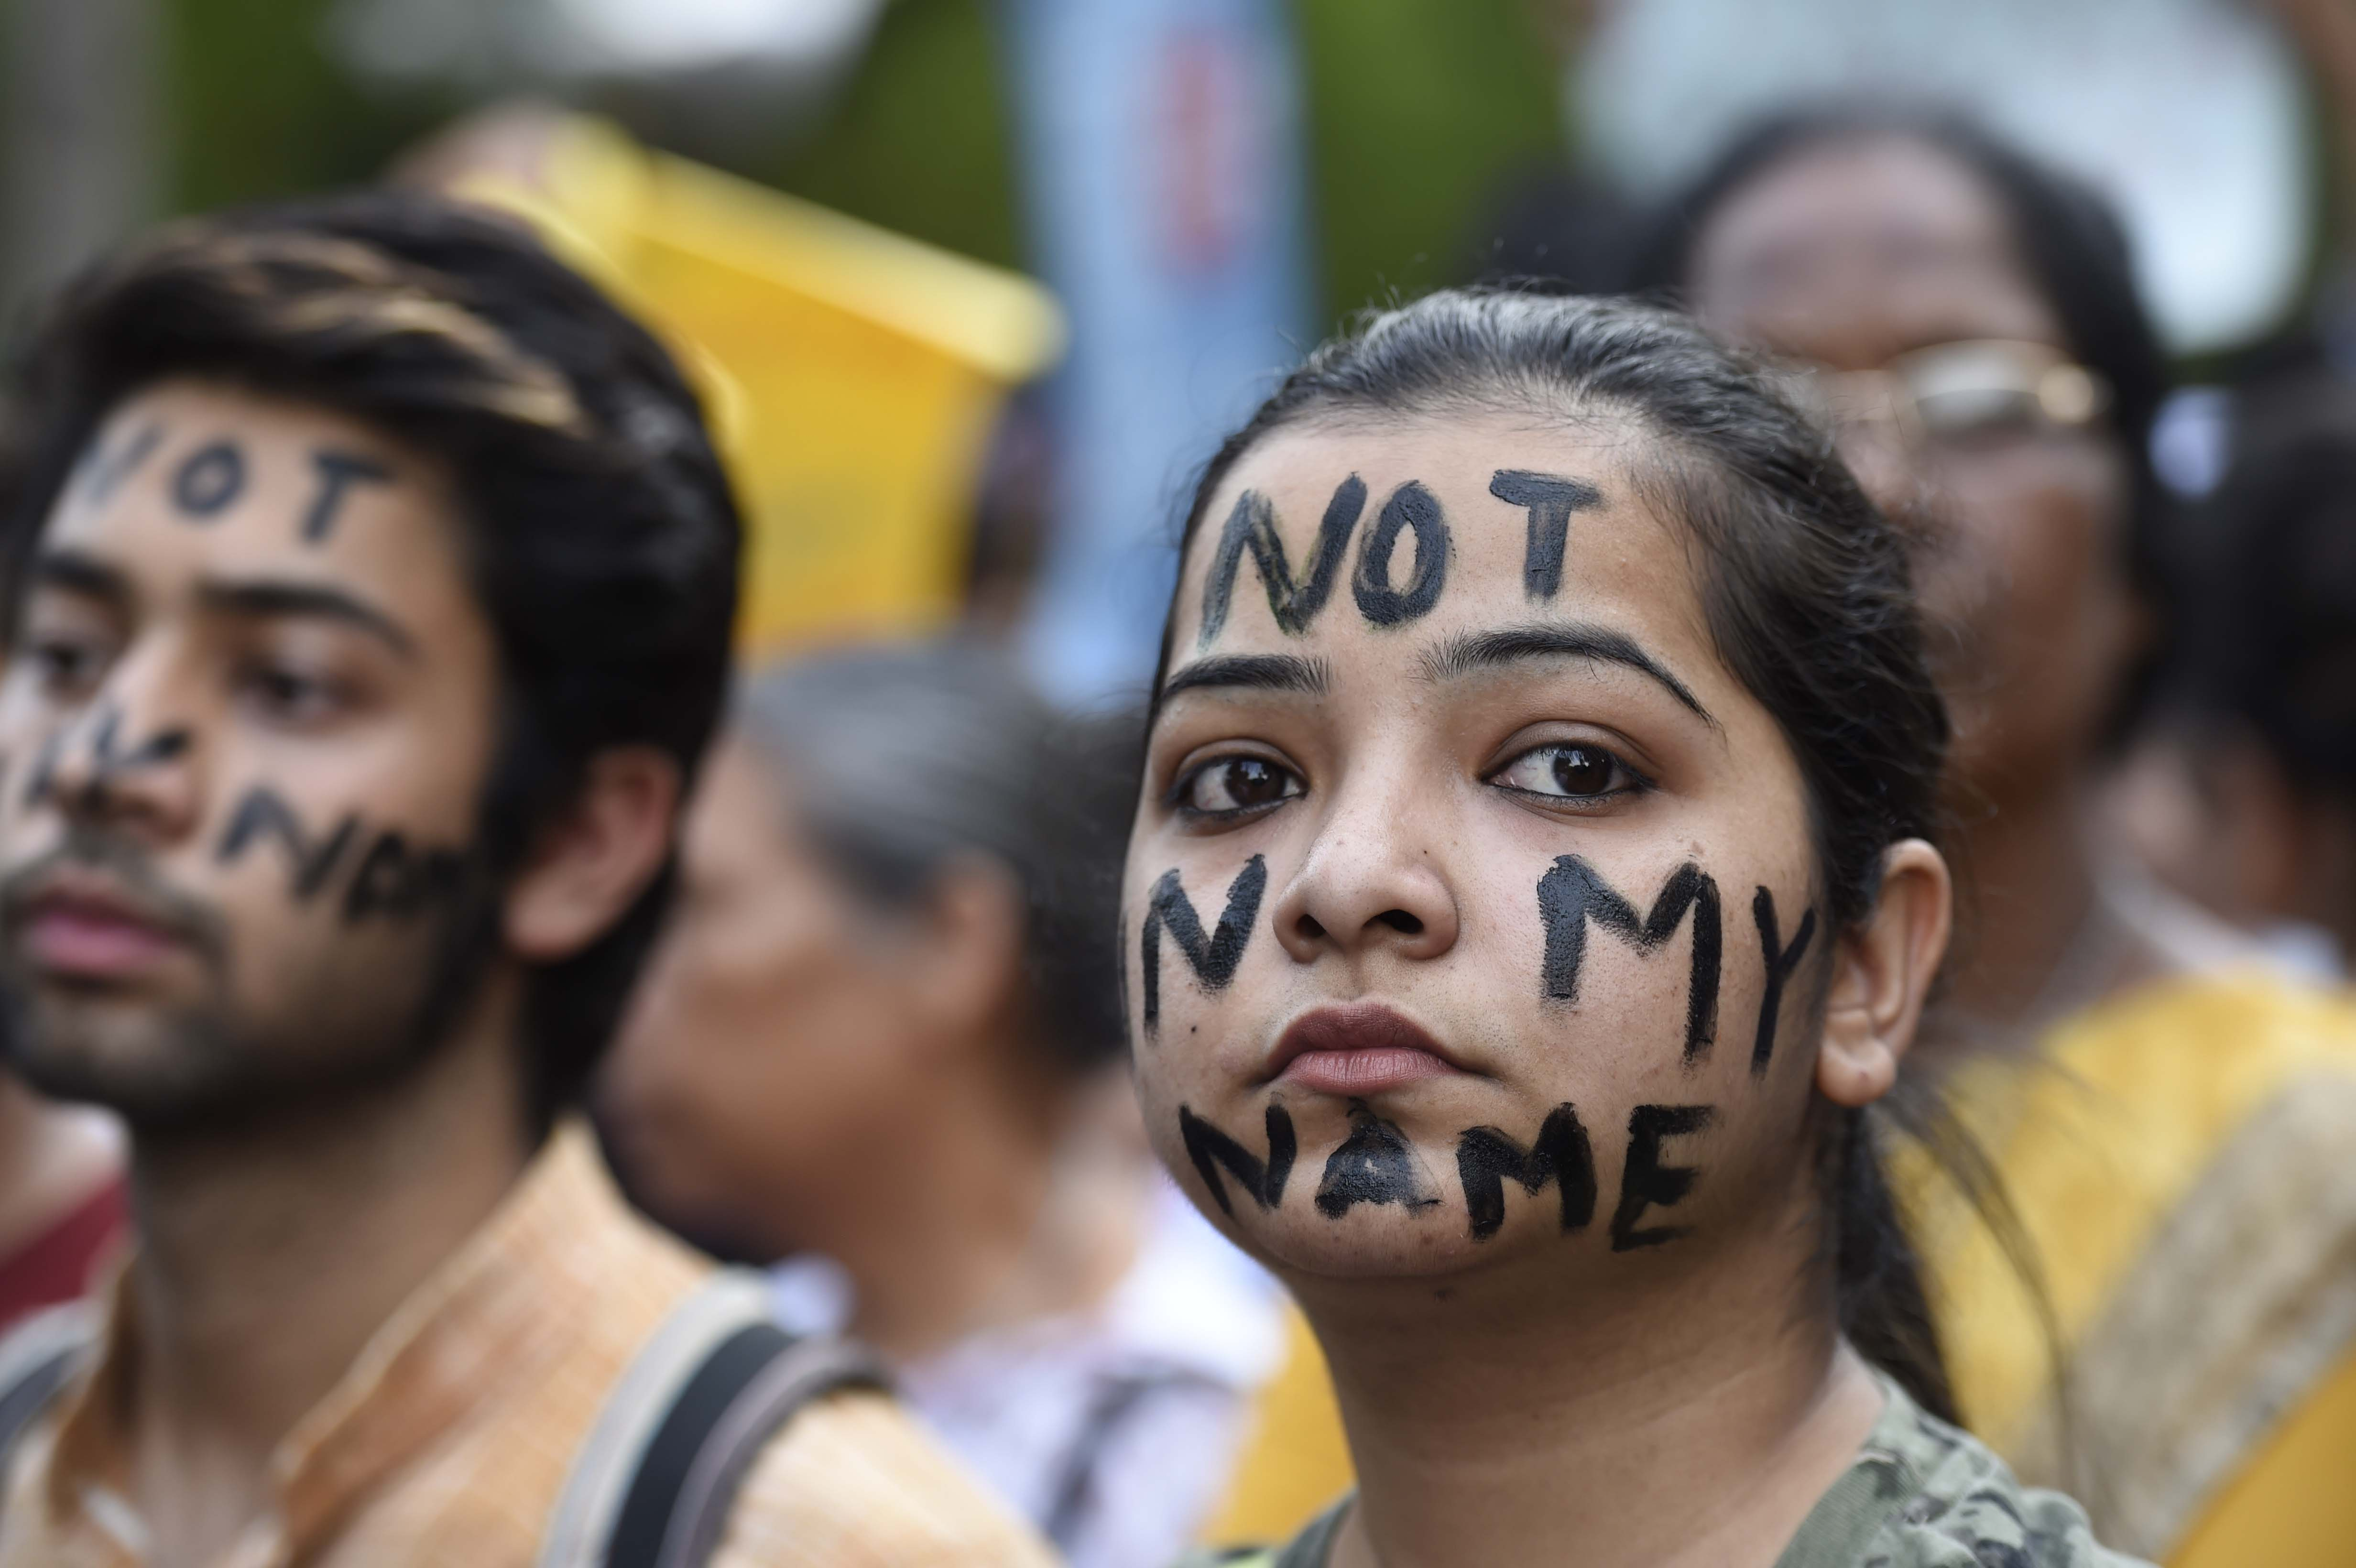 People take part in a 'Not In My Name' protest against the Kathua and Unnao rape cases, New Delhi, April 15, 2018.